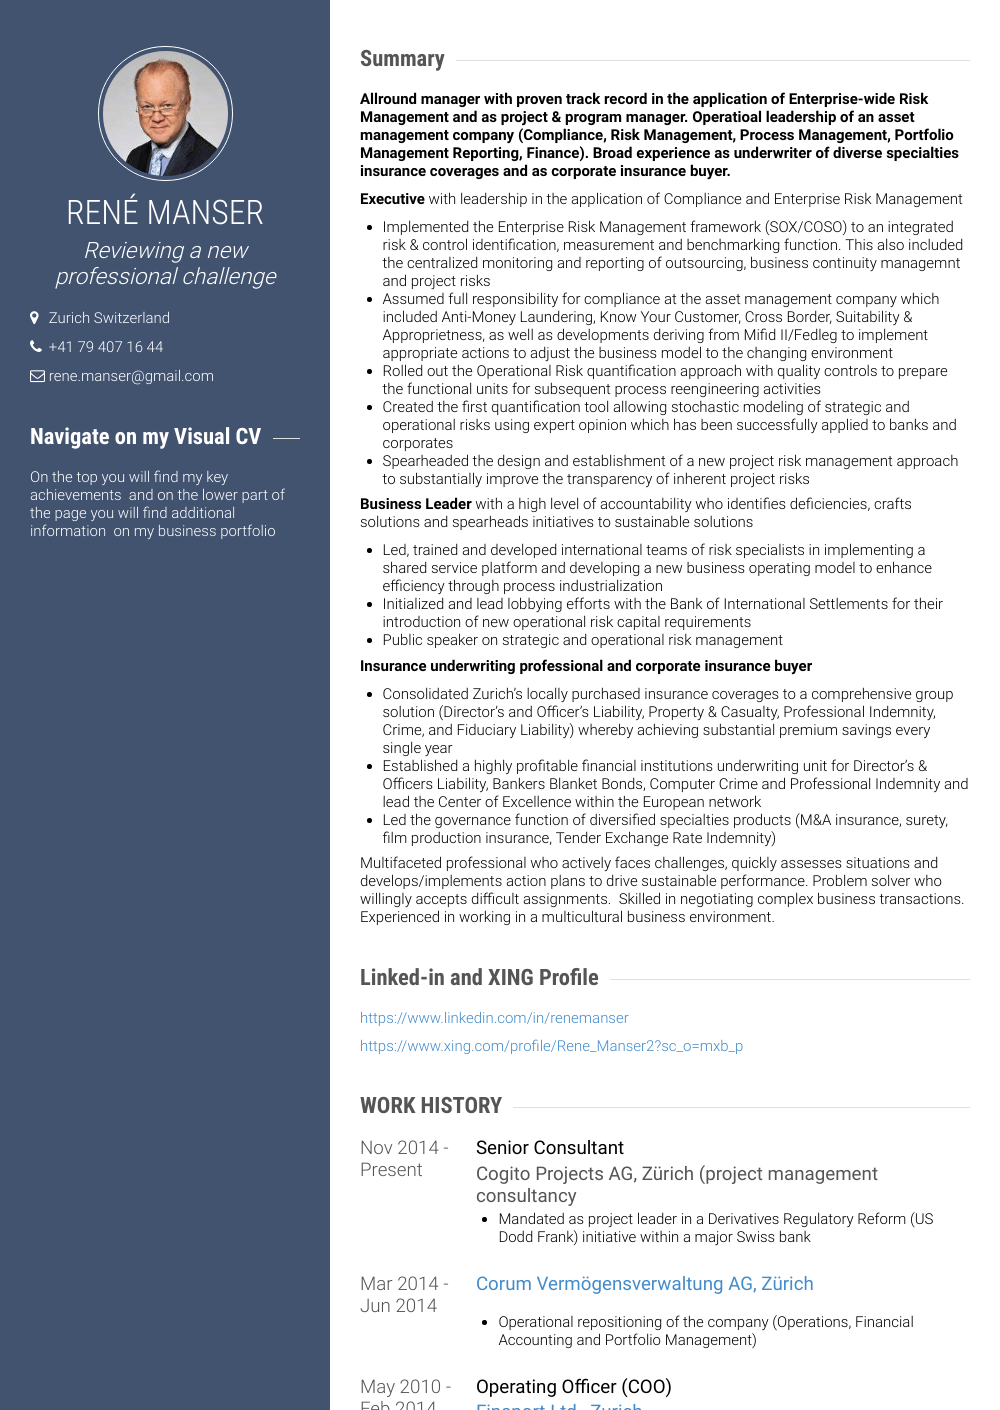 Senior Consultant Resume Sample